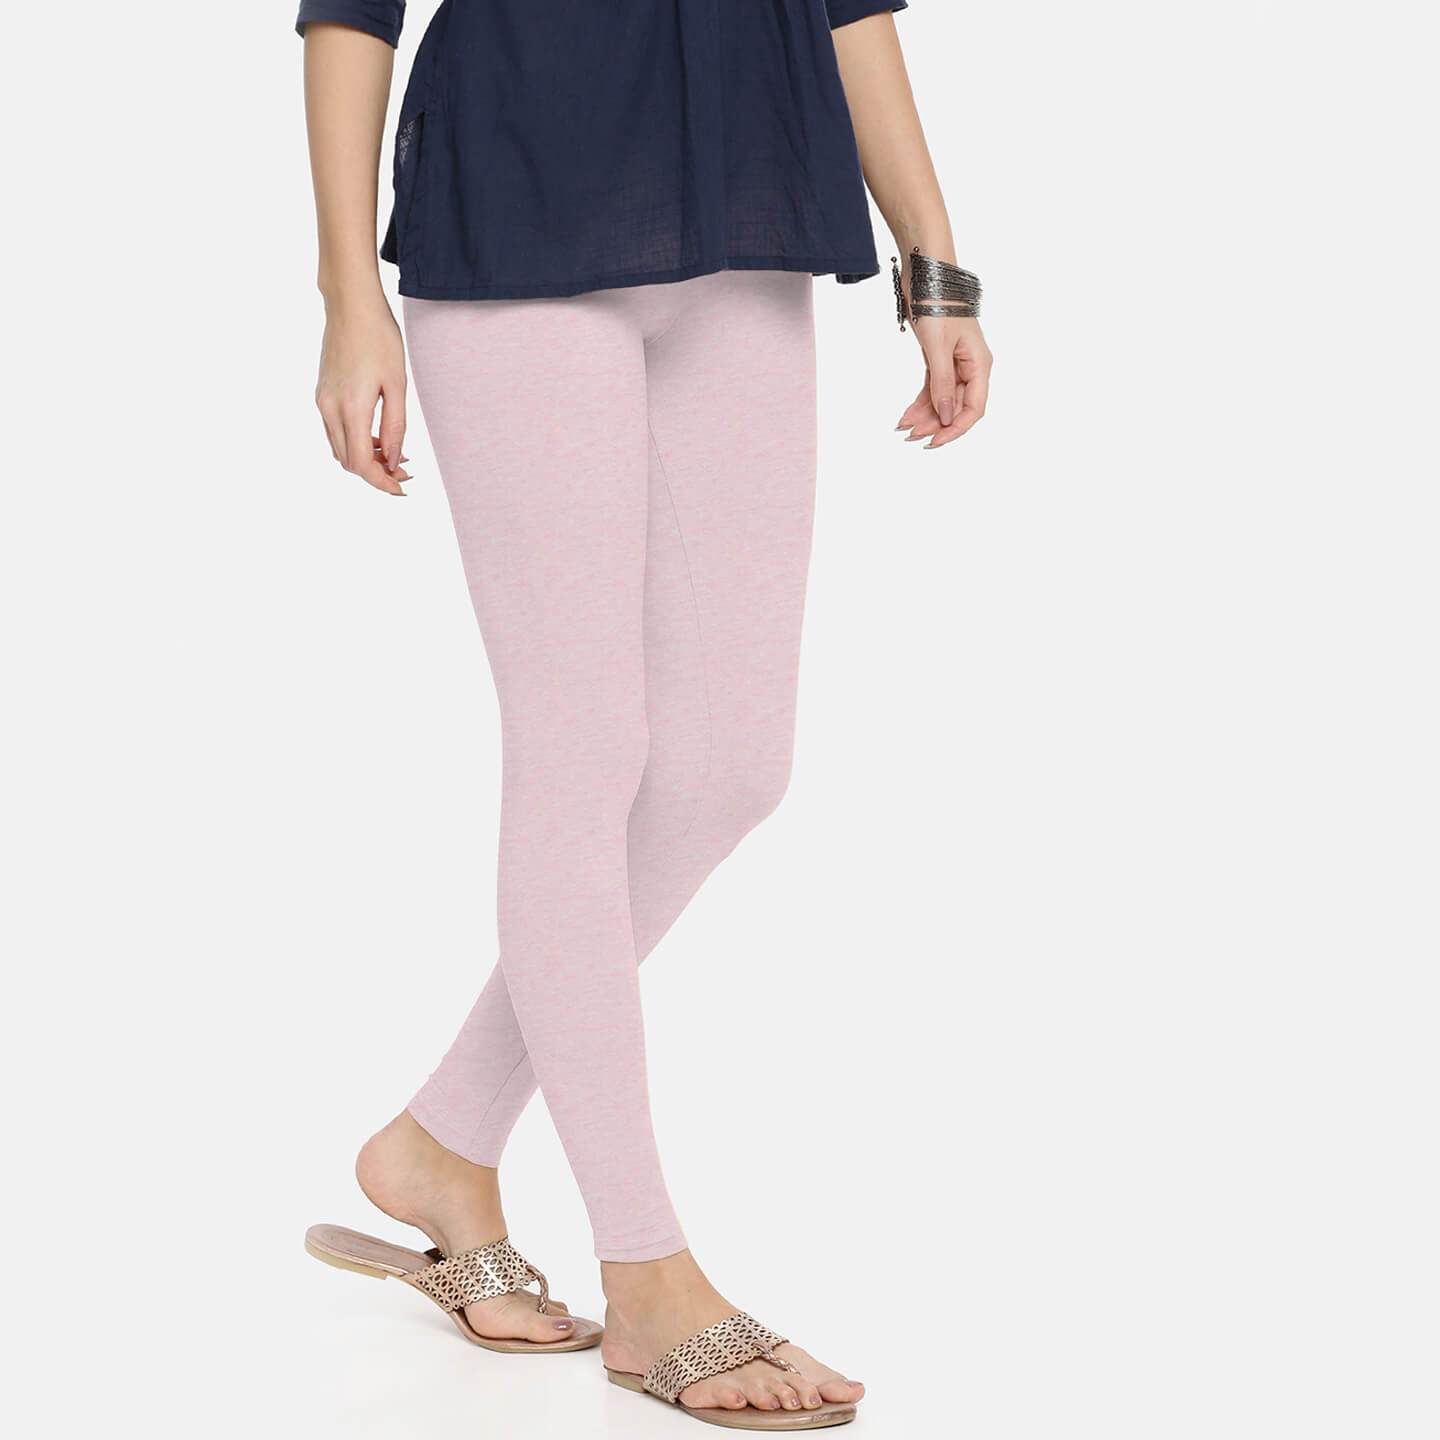 Stone Harbor women Leggings Pink / 10 Stone Harbor PINKER Stretch Jersey Tights